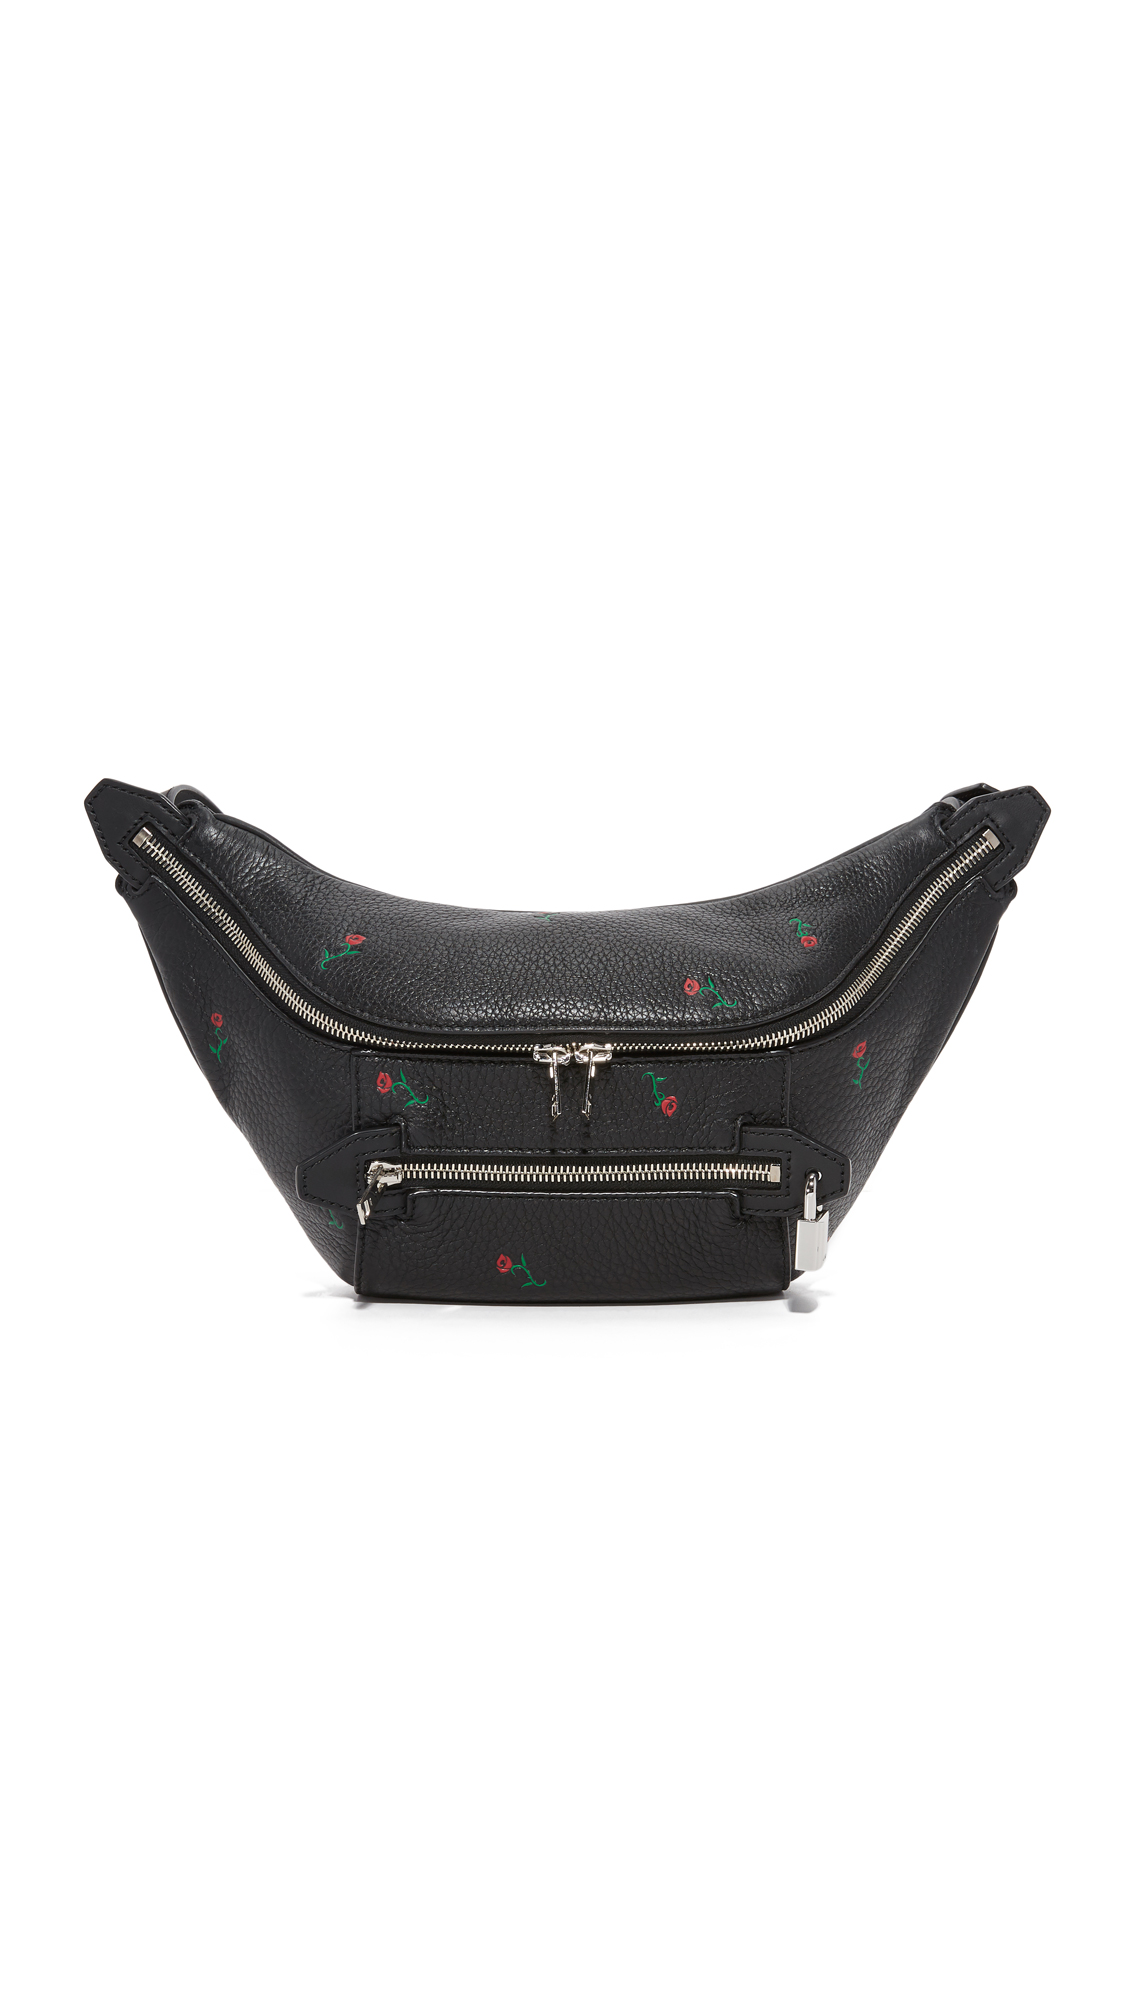 A pebbled leather Alexander Wang fanny pack accented with embossed roses. A polished padlock trims the front pocket. Slim back pocket. The top zip opens to a lined interior. Adjustable belt with buckle closure. Dust bag